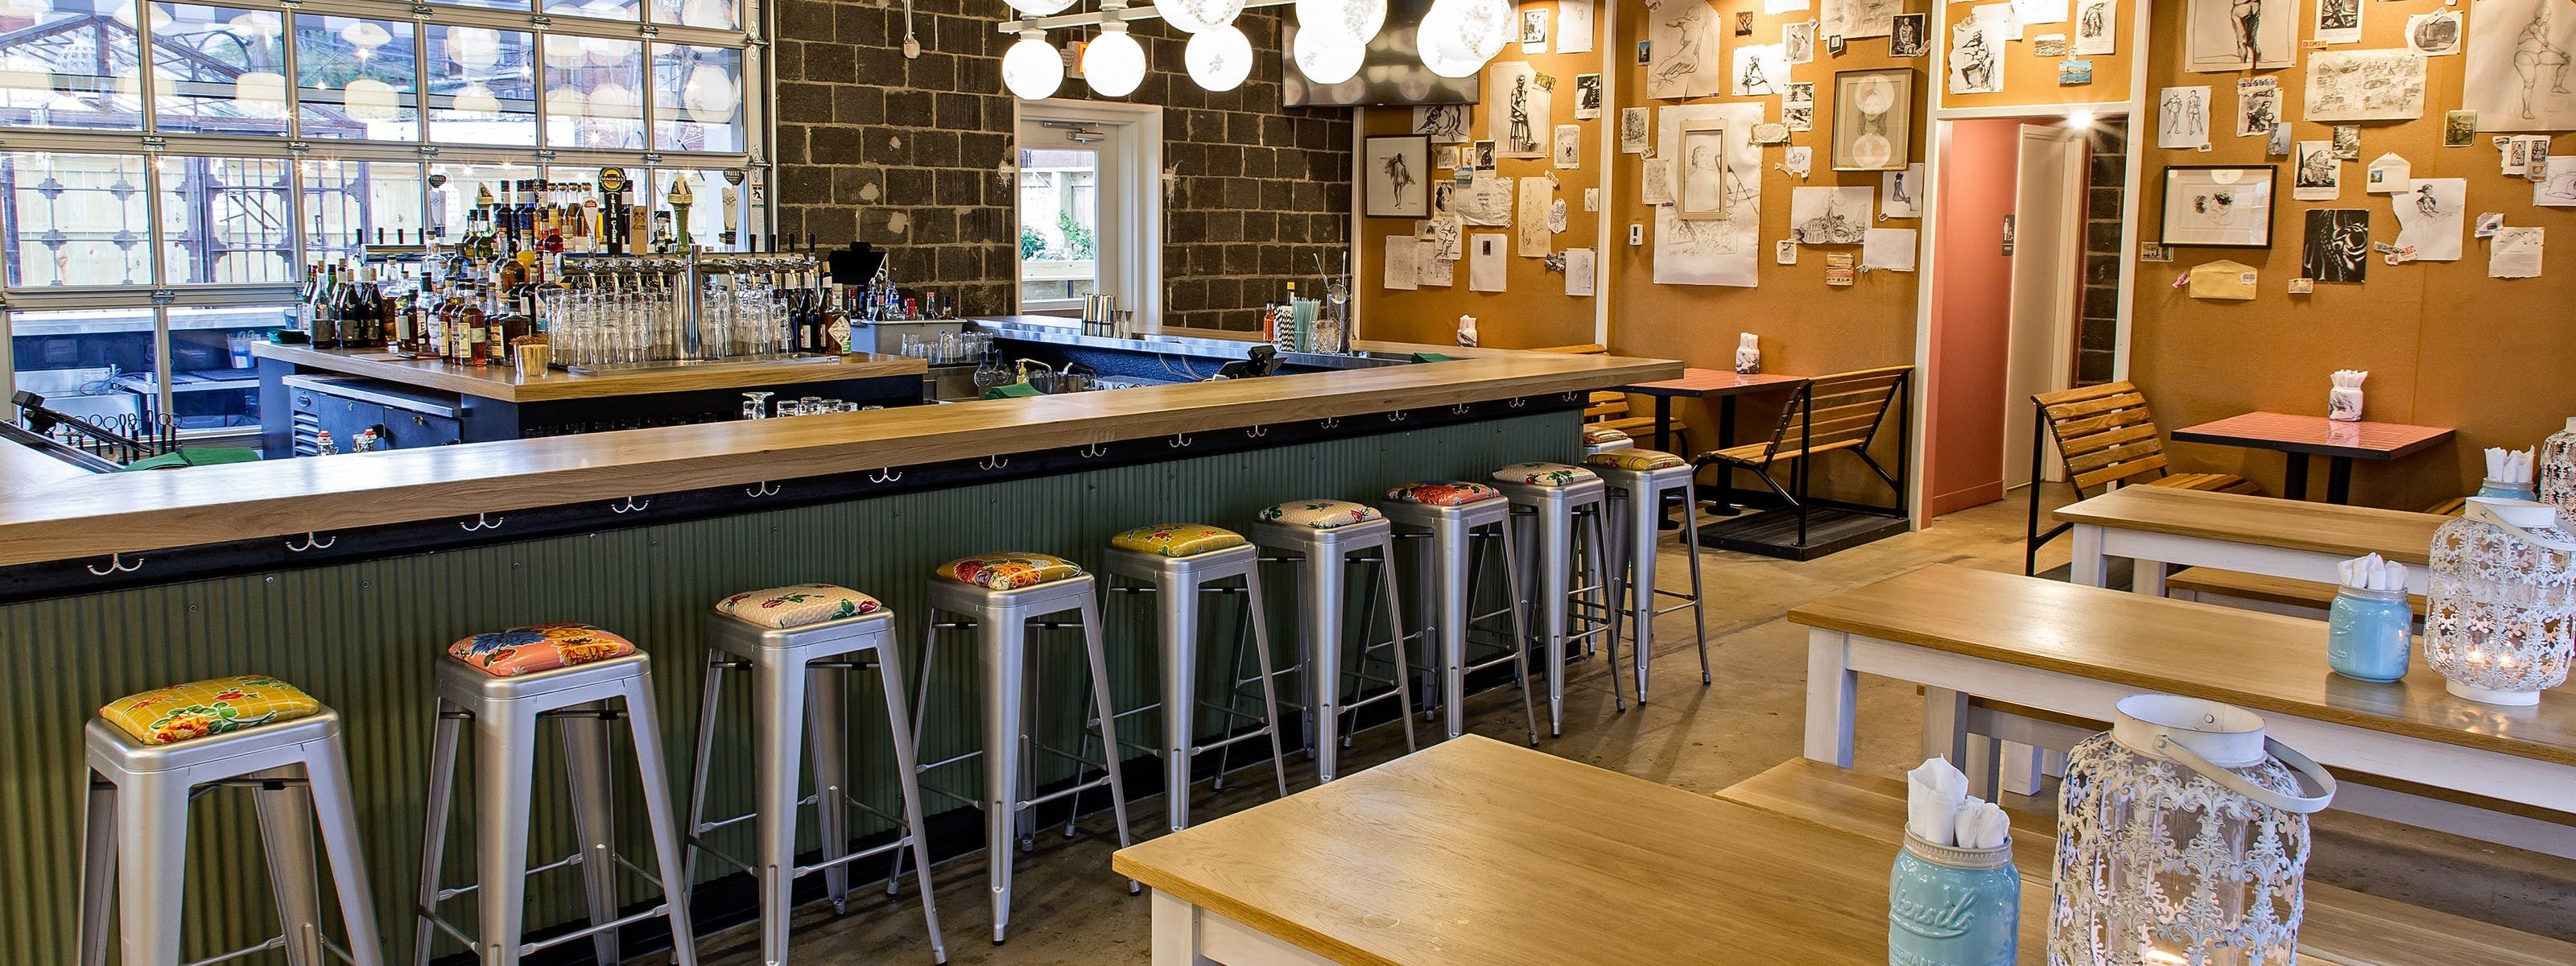 The Best DC Restaurants For Date Night - Washington DC - The Infatuation